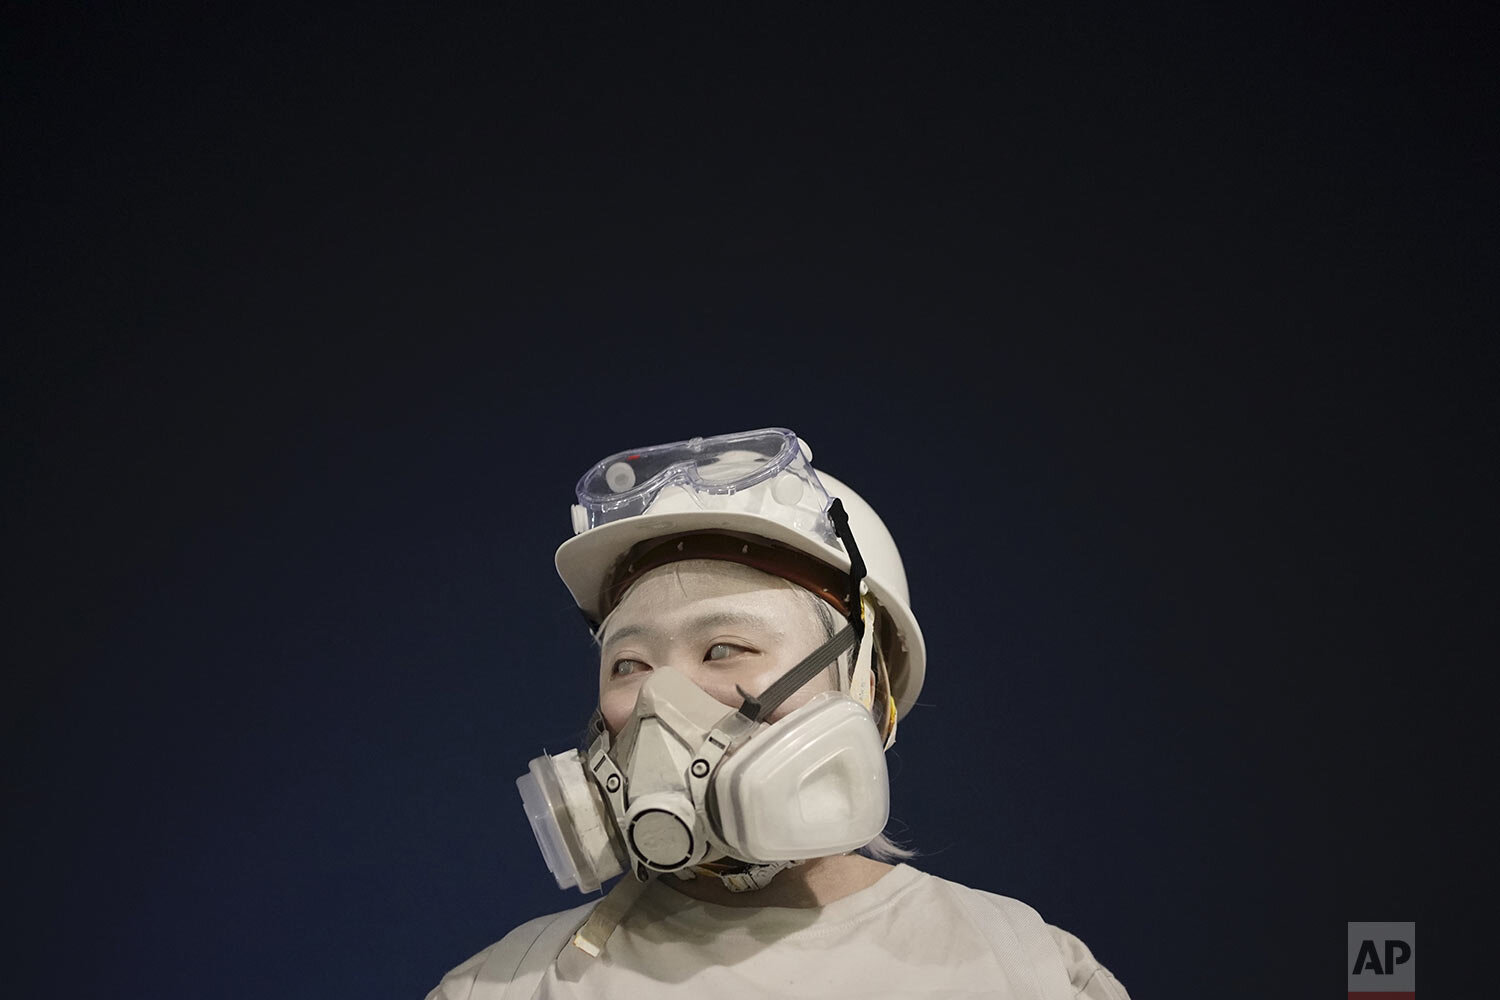 A protester wears a mask during a protest in Hong Kong, Friday, Oct. 18, 2019.  (AP Photo/Felipe Dana)